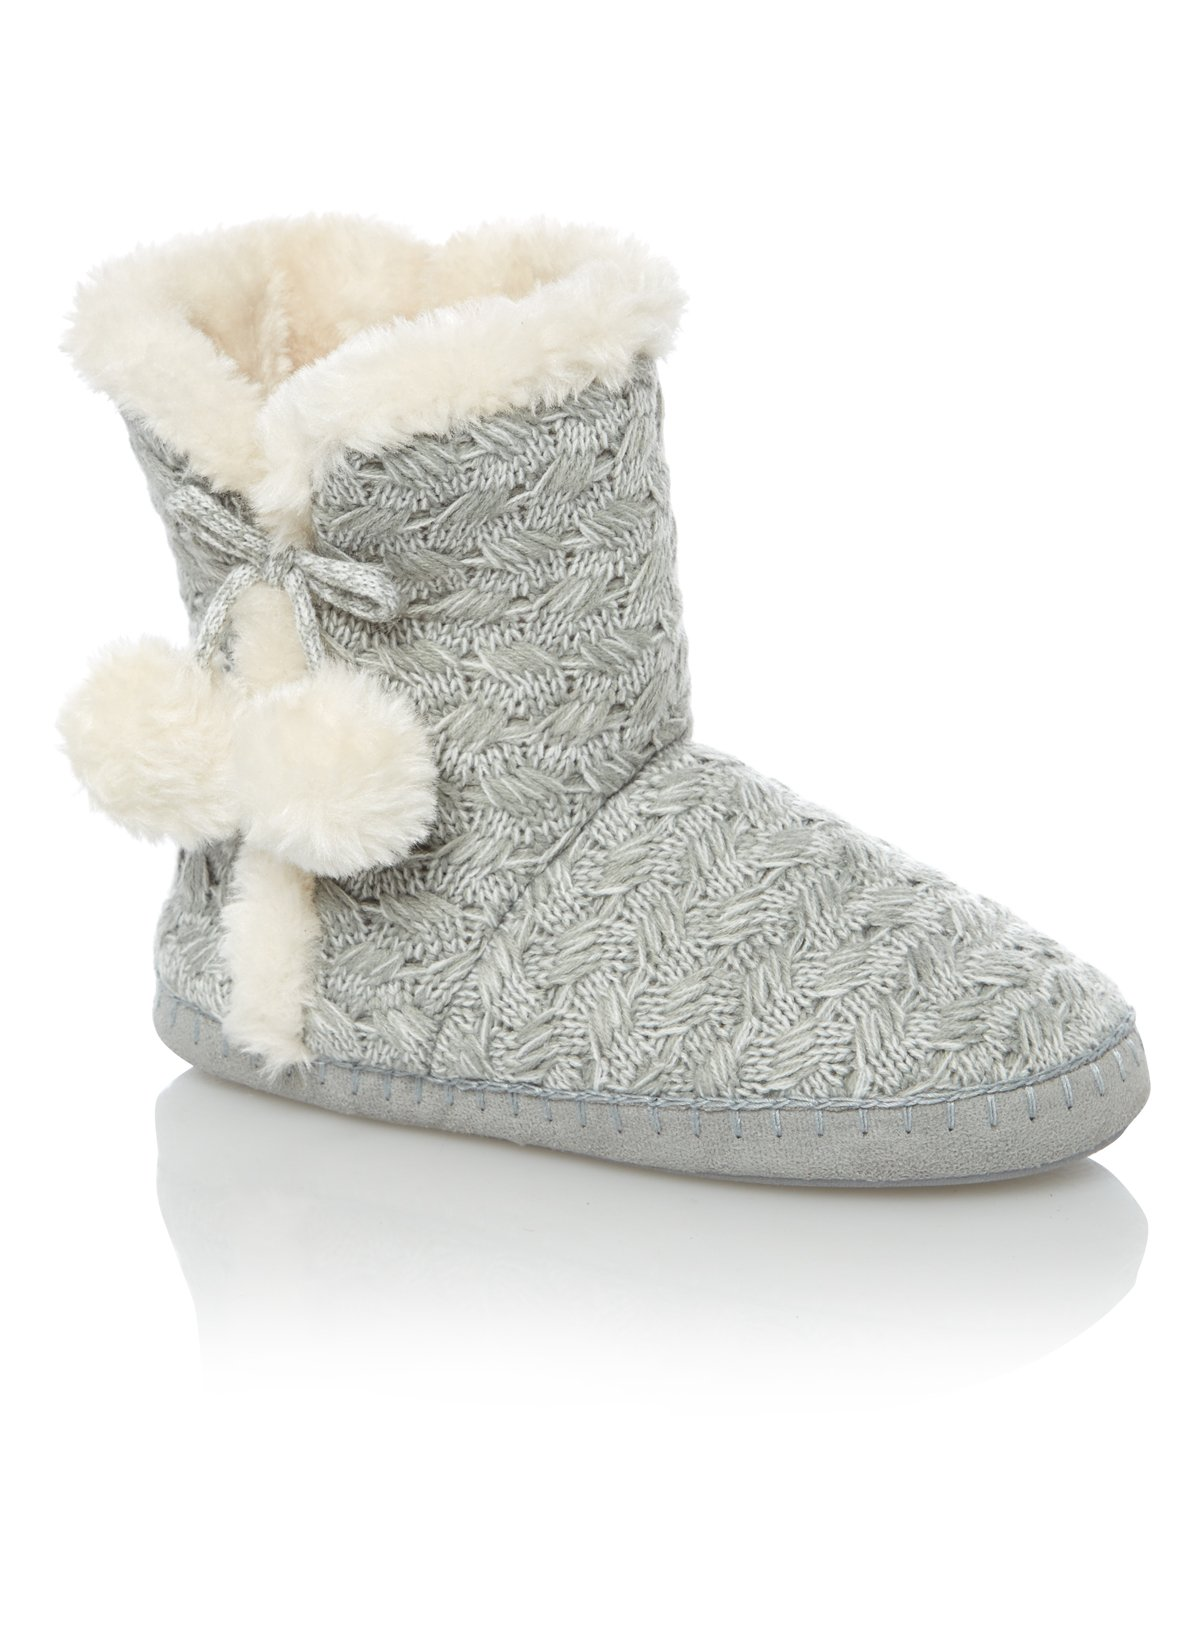 Womens Grey Cable Knit Slipper Boots